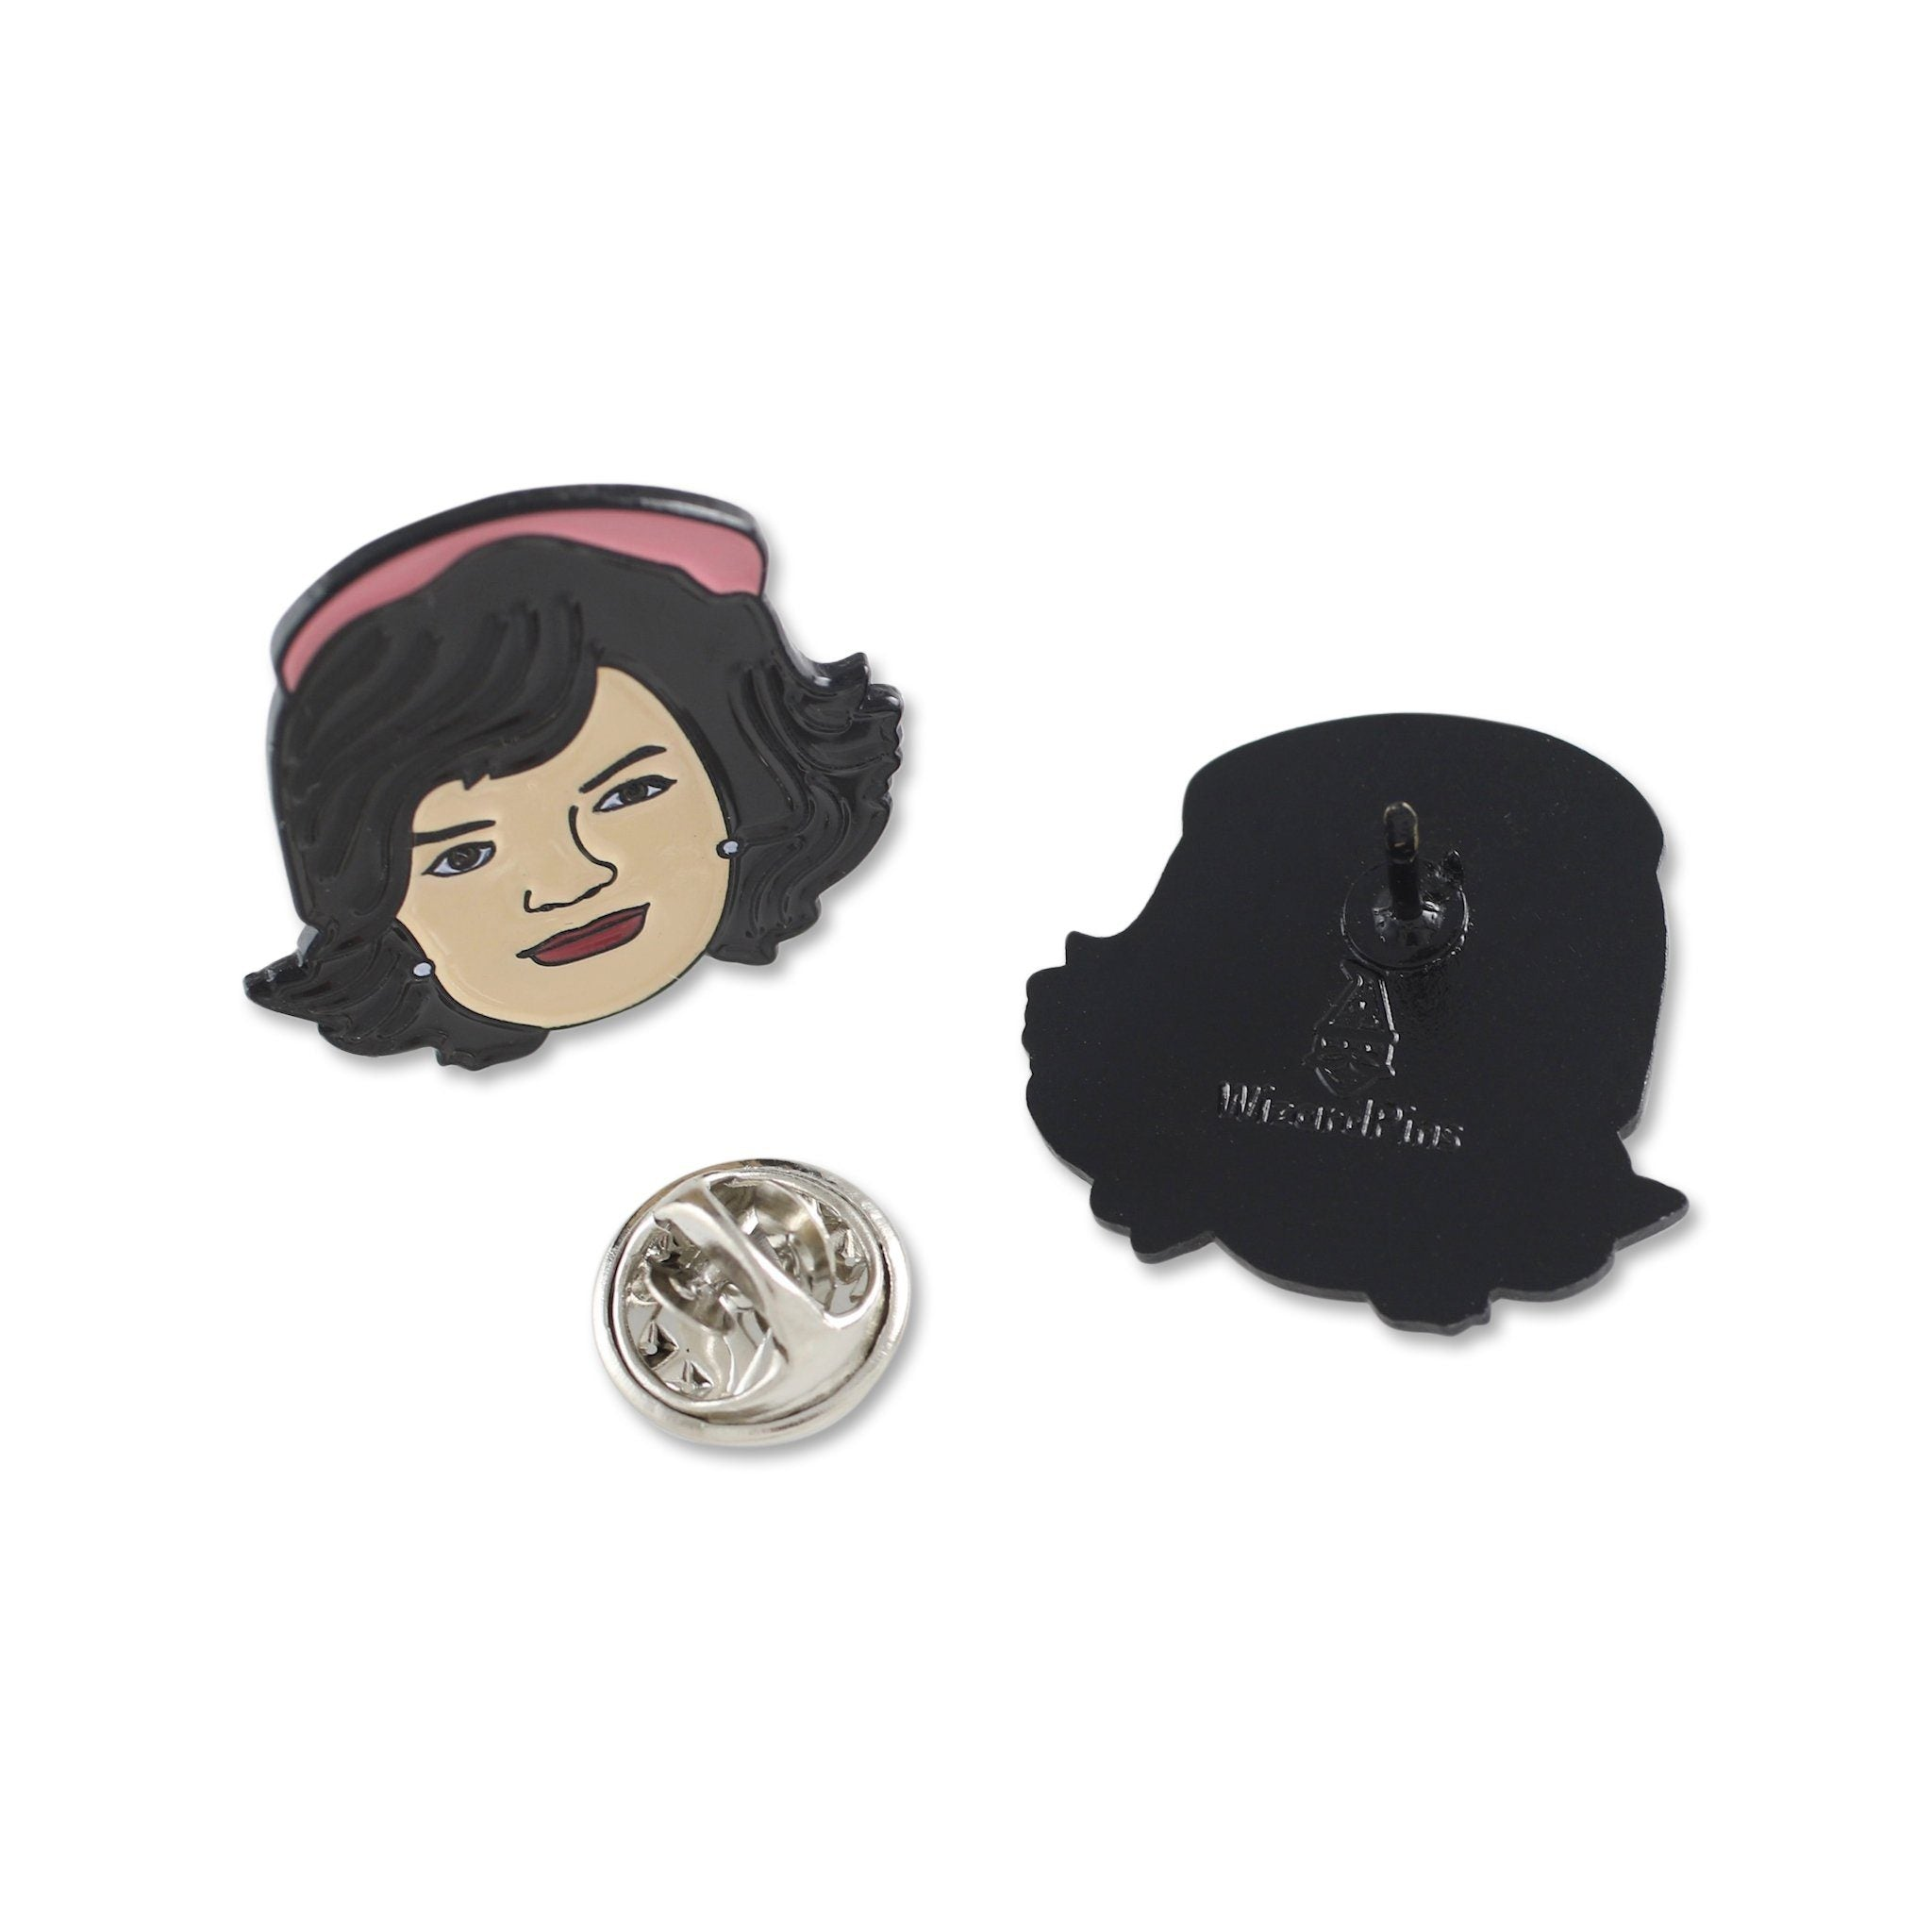 Jacqueline Jackie Kennedy First Lady of The United States Celebrity Face Enamel Pin